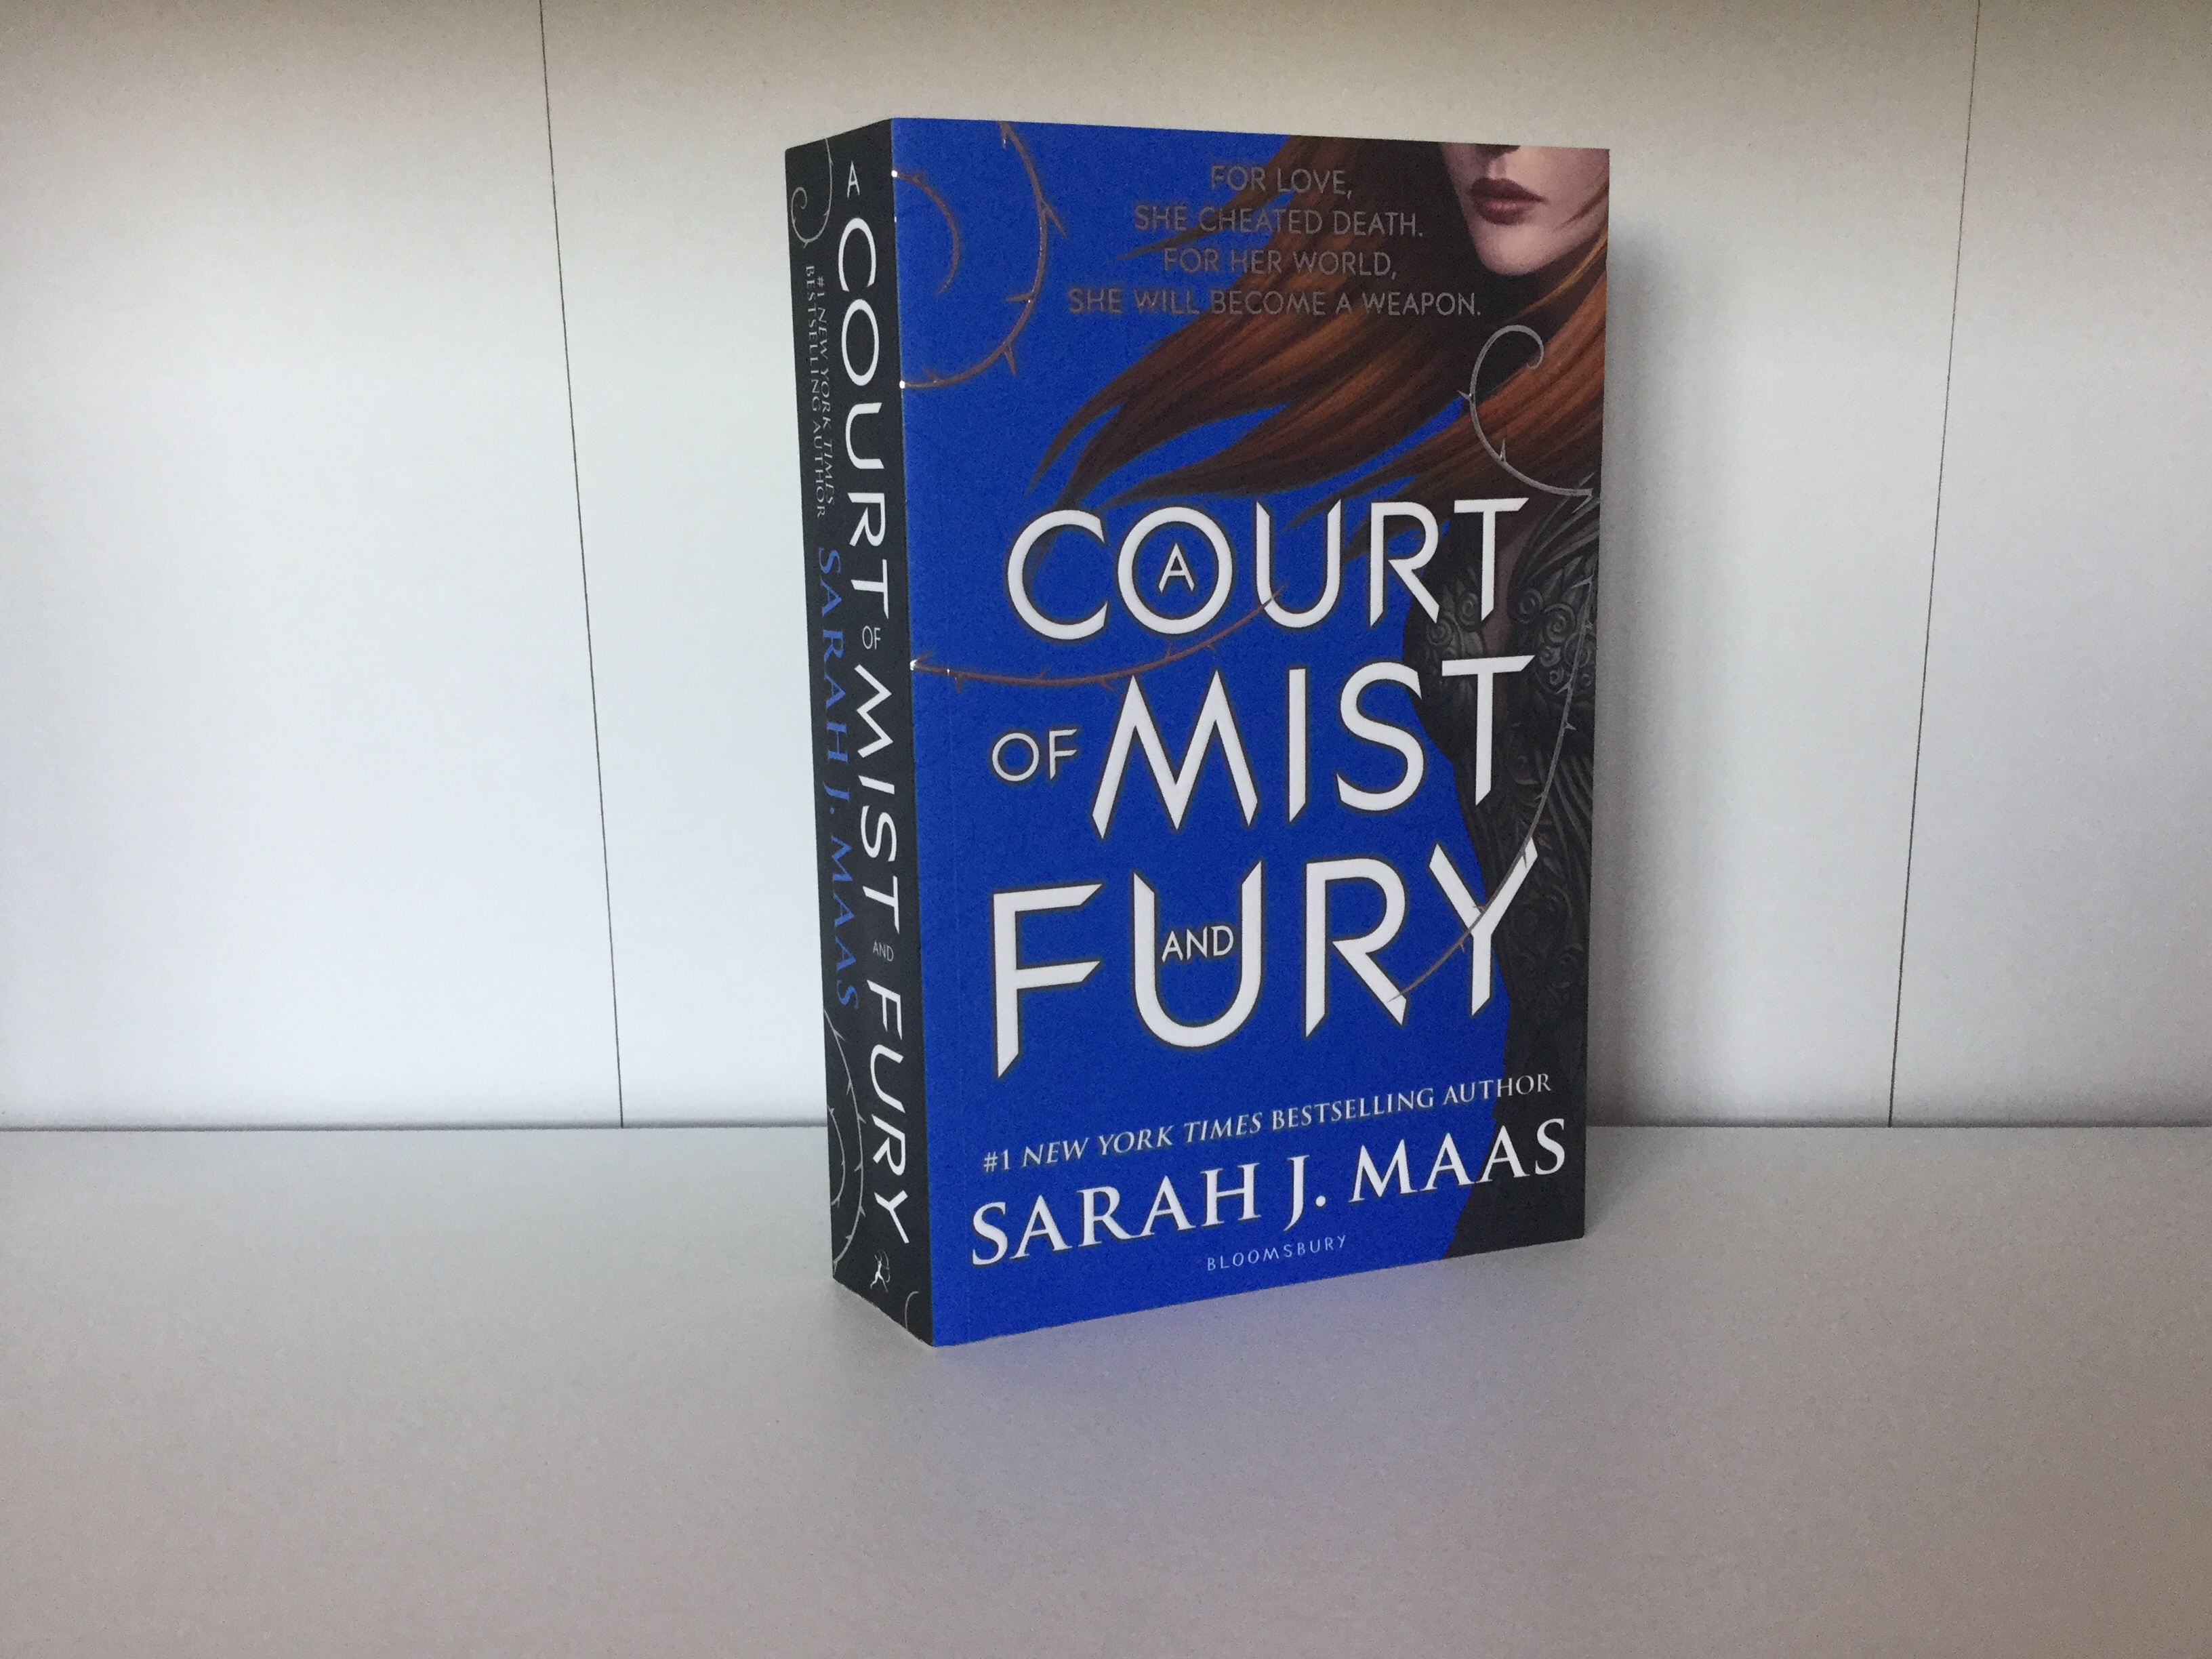 The cover of A Court of Mist and Fury by Sarah J. Maas